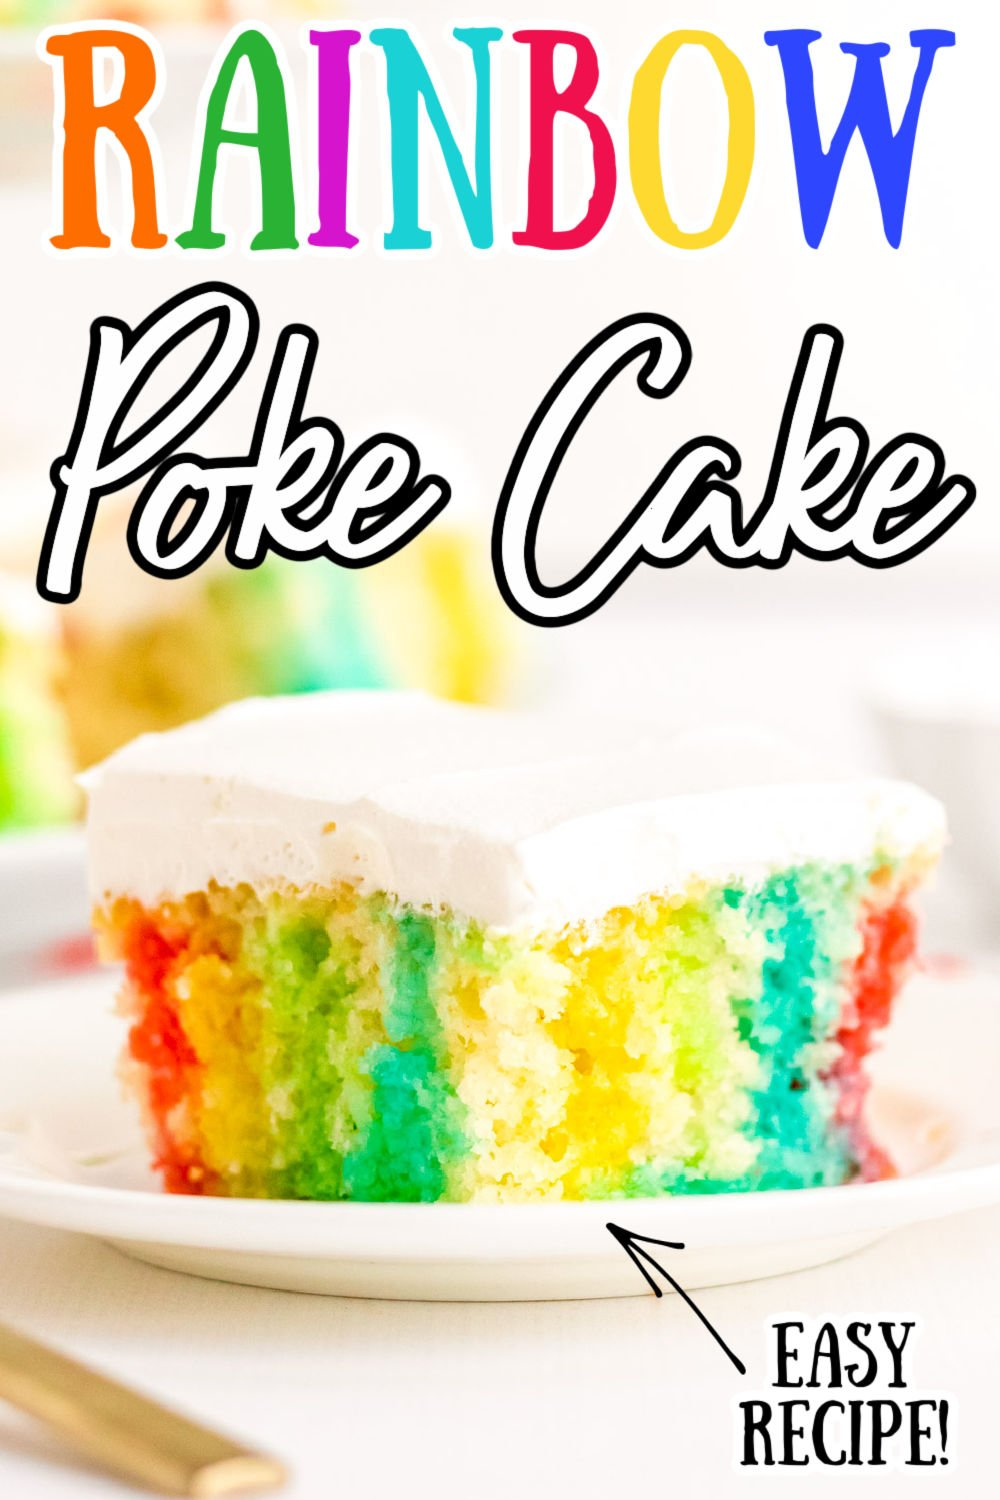 This Rainbow Jello Poke Cake is easily made using a boxed white cake mix and jello to create a fun, light dessert filled with vibrant colors! via @sugarandsoulco